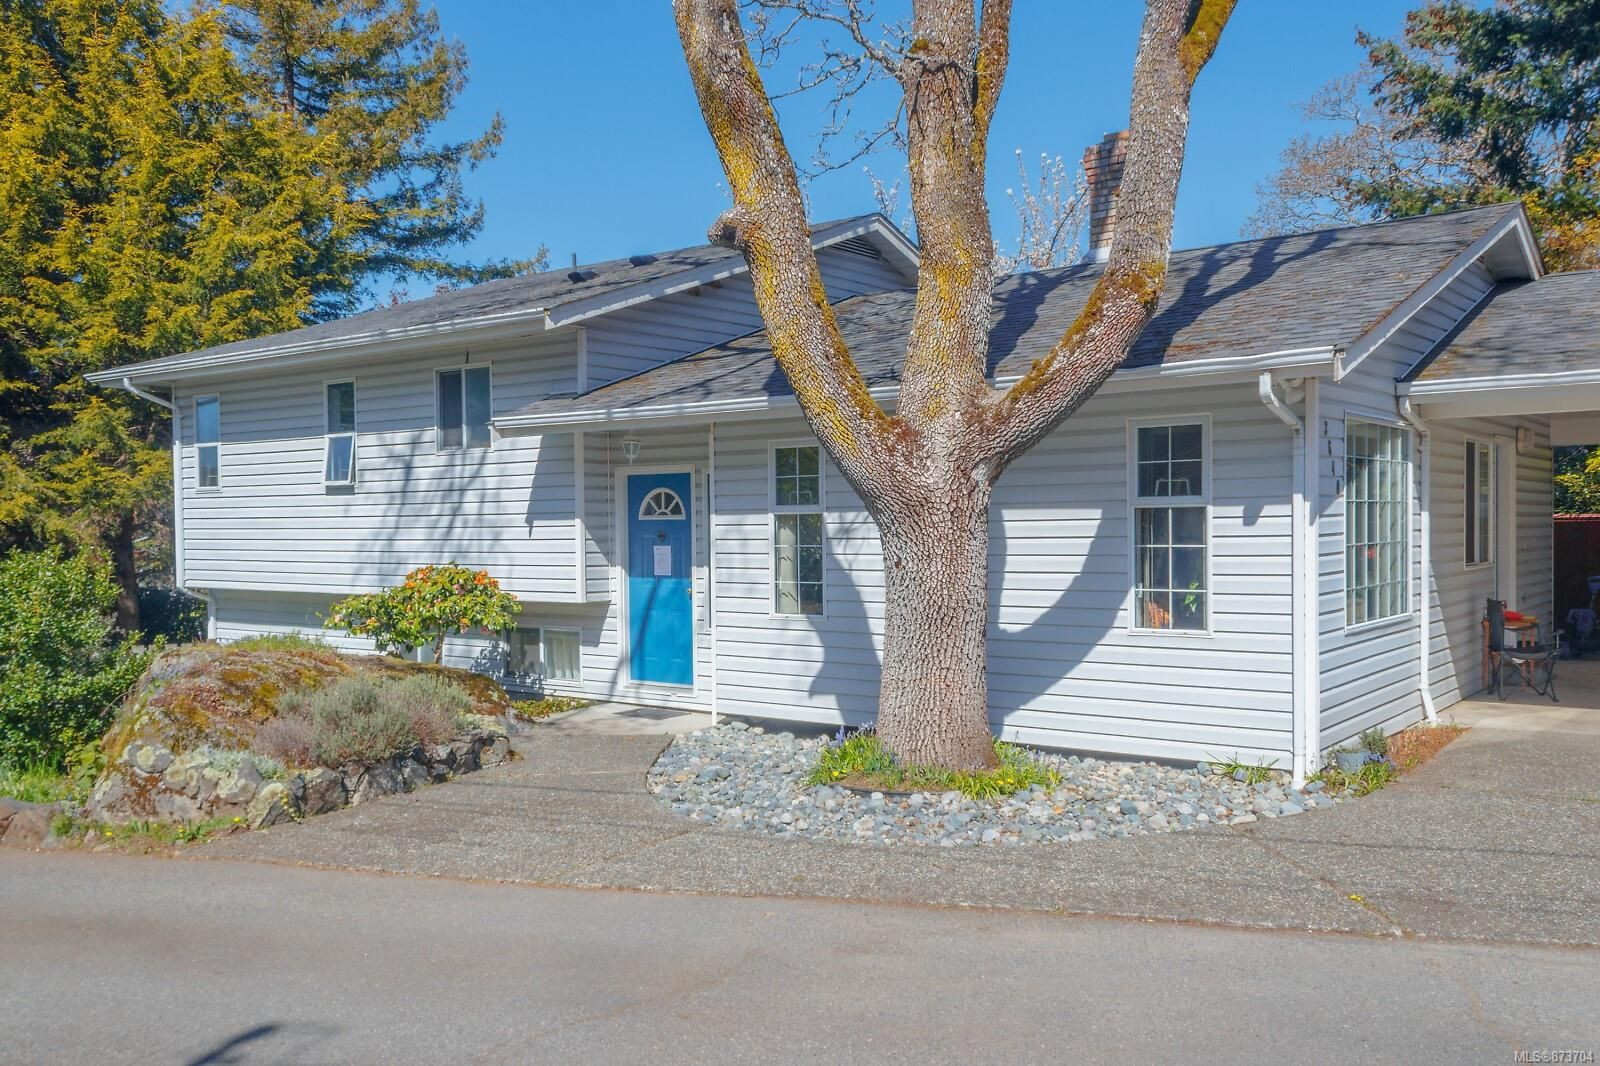 Main Photo: 3640 CRAIGMILLAR Ave in : SE Maplewood House for sale (Saanich East)  : MLS®# 873704